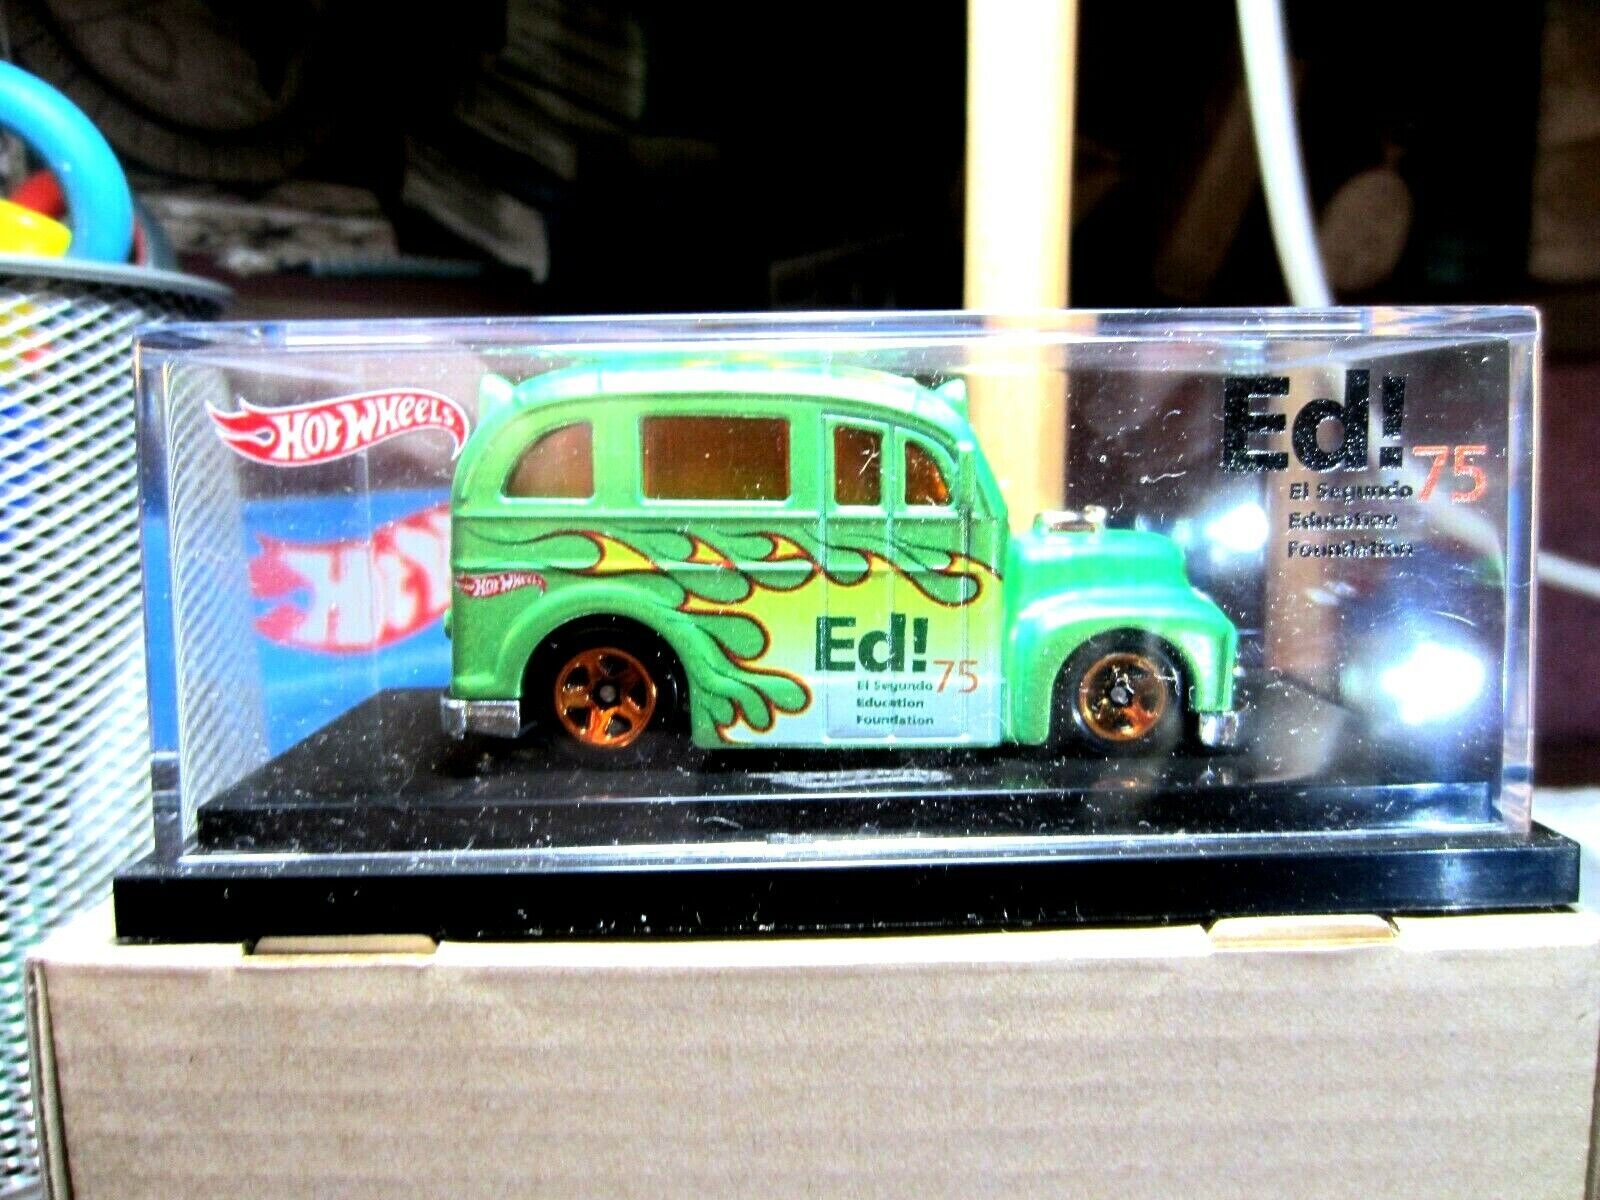 FANTASTIC HOTWHEELS....EL SEGUNDO EDUCATION SCHOOL BUS PROMO